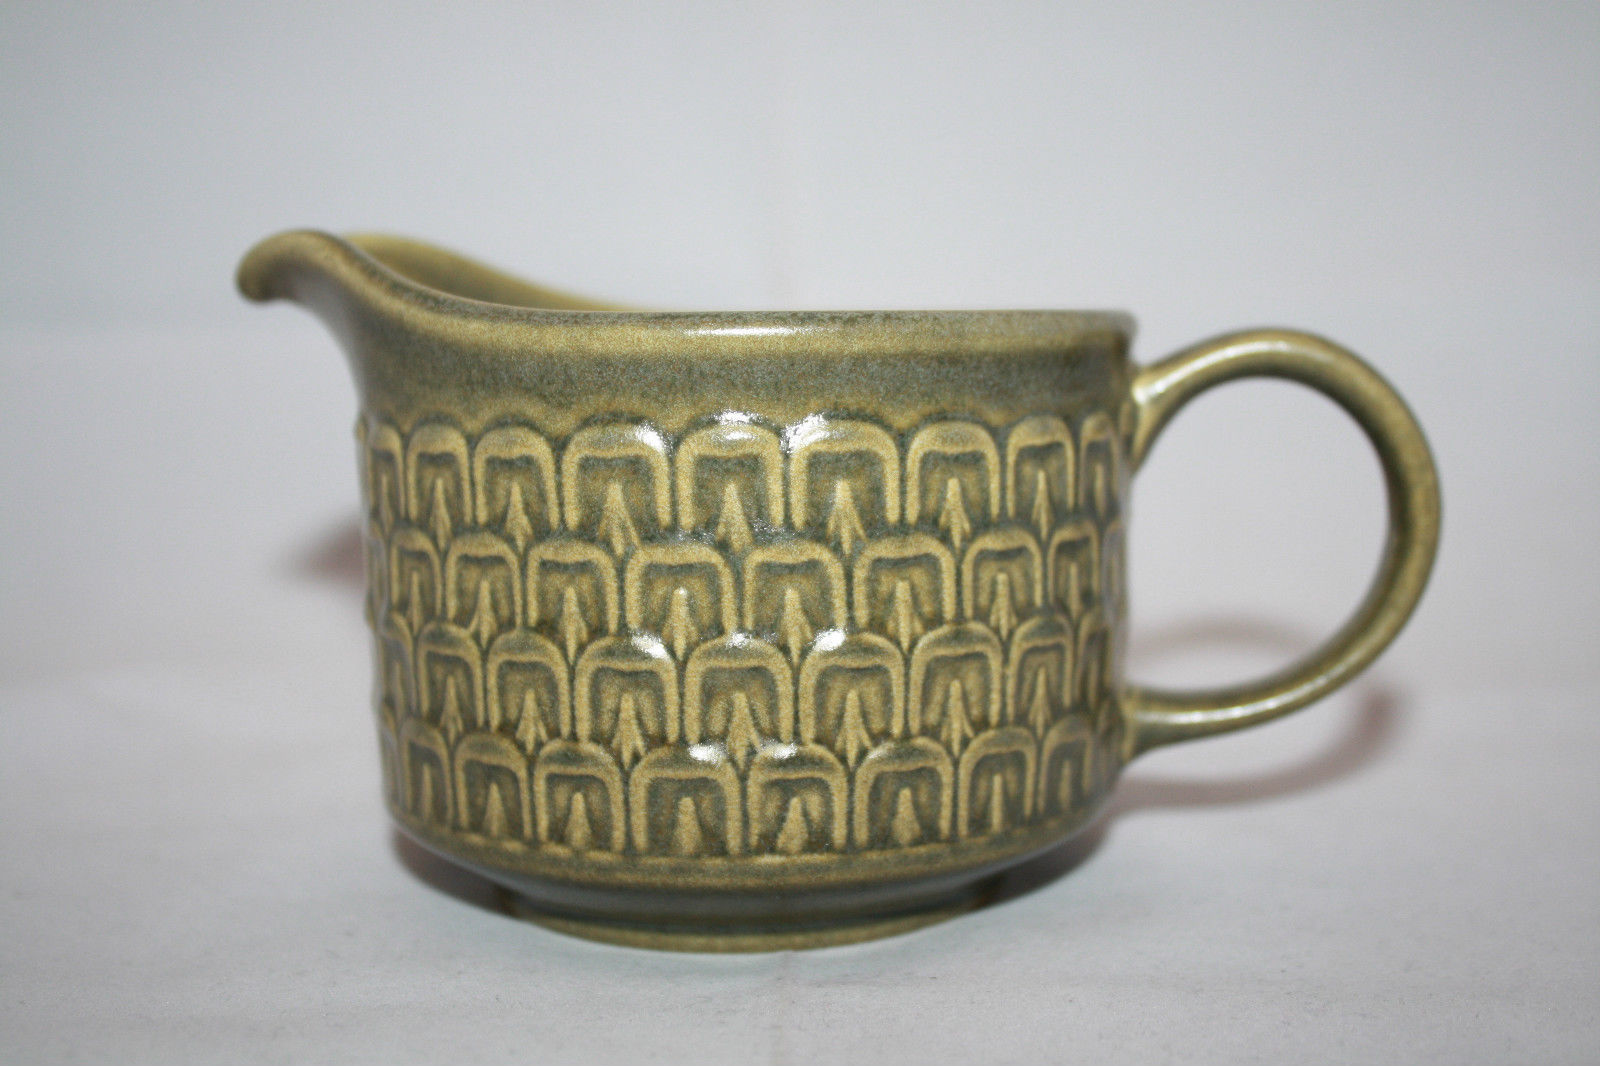 Vintage Wedgwood Cambrian Green Creamer  Made in England Retro Oven to Table